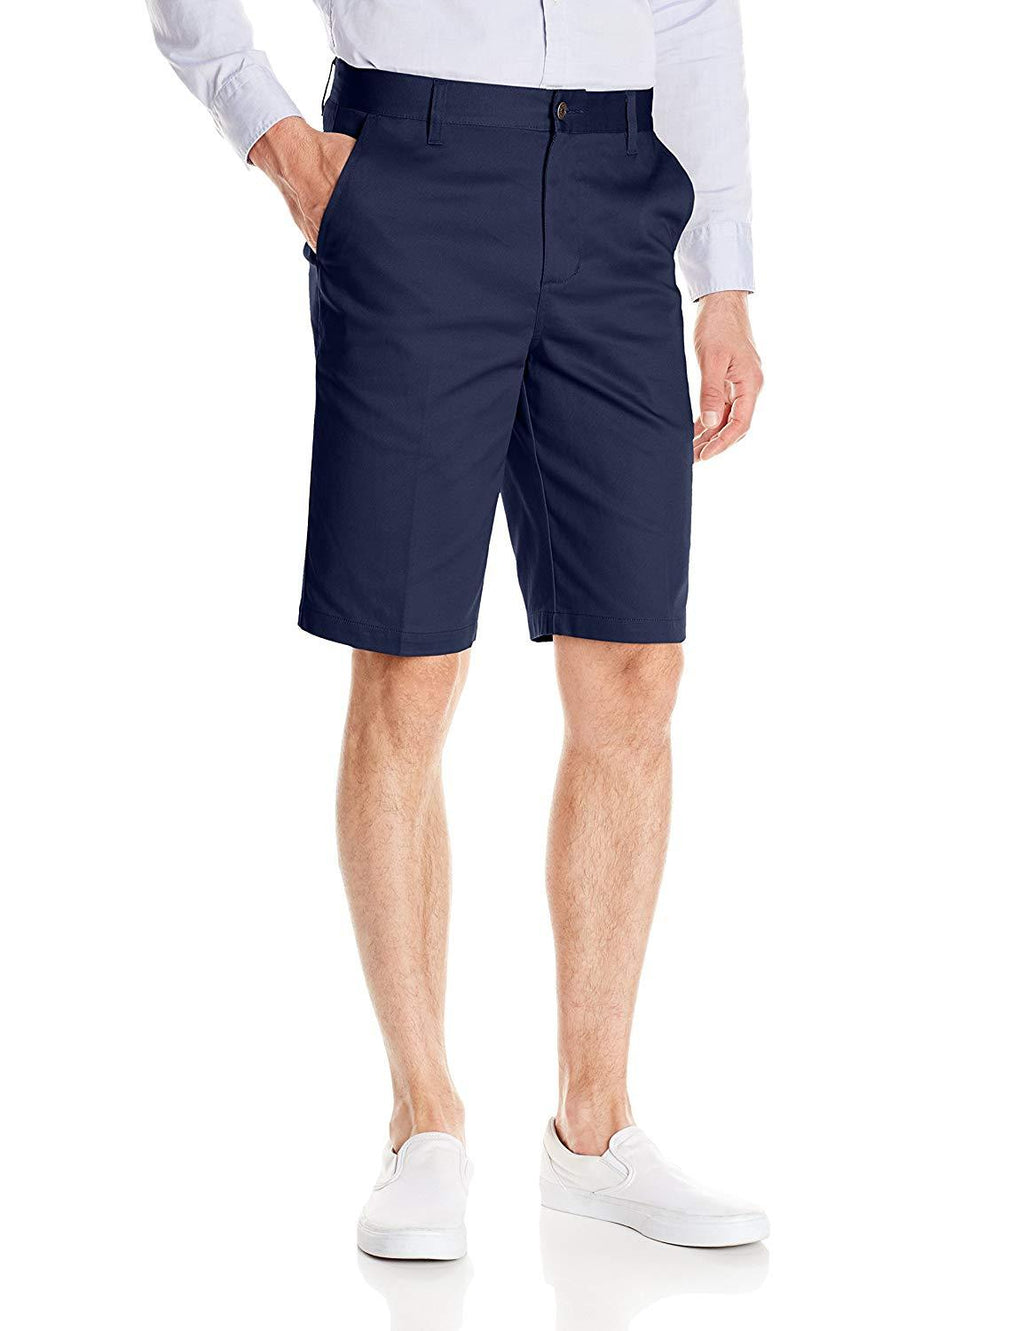 lee-uniforms-men's-classic-stretch-short